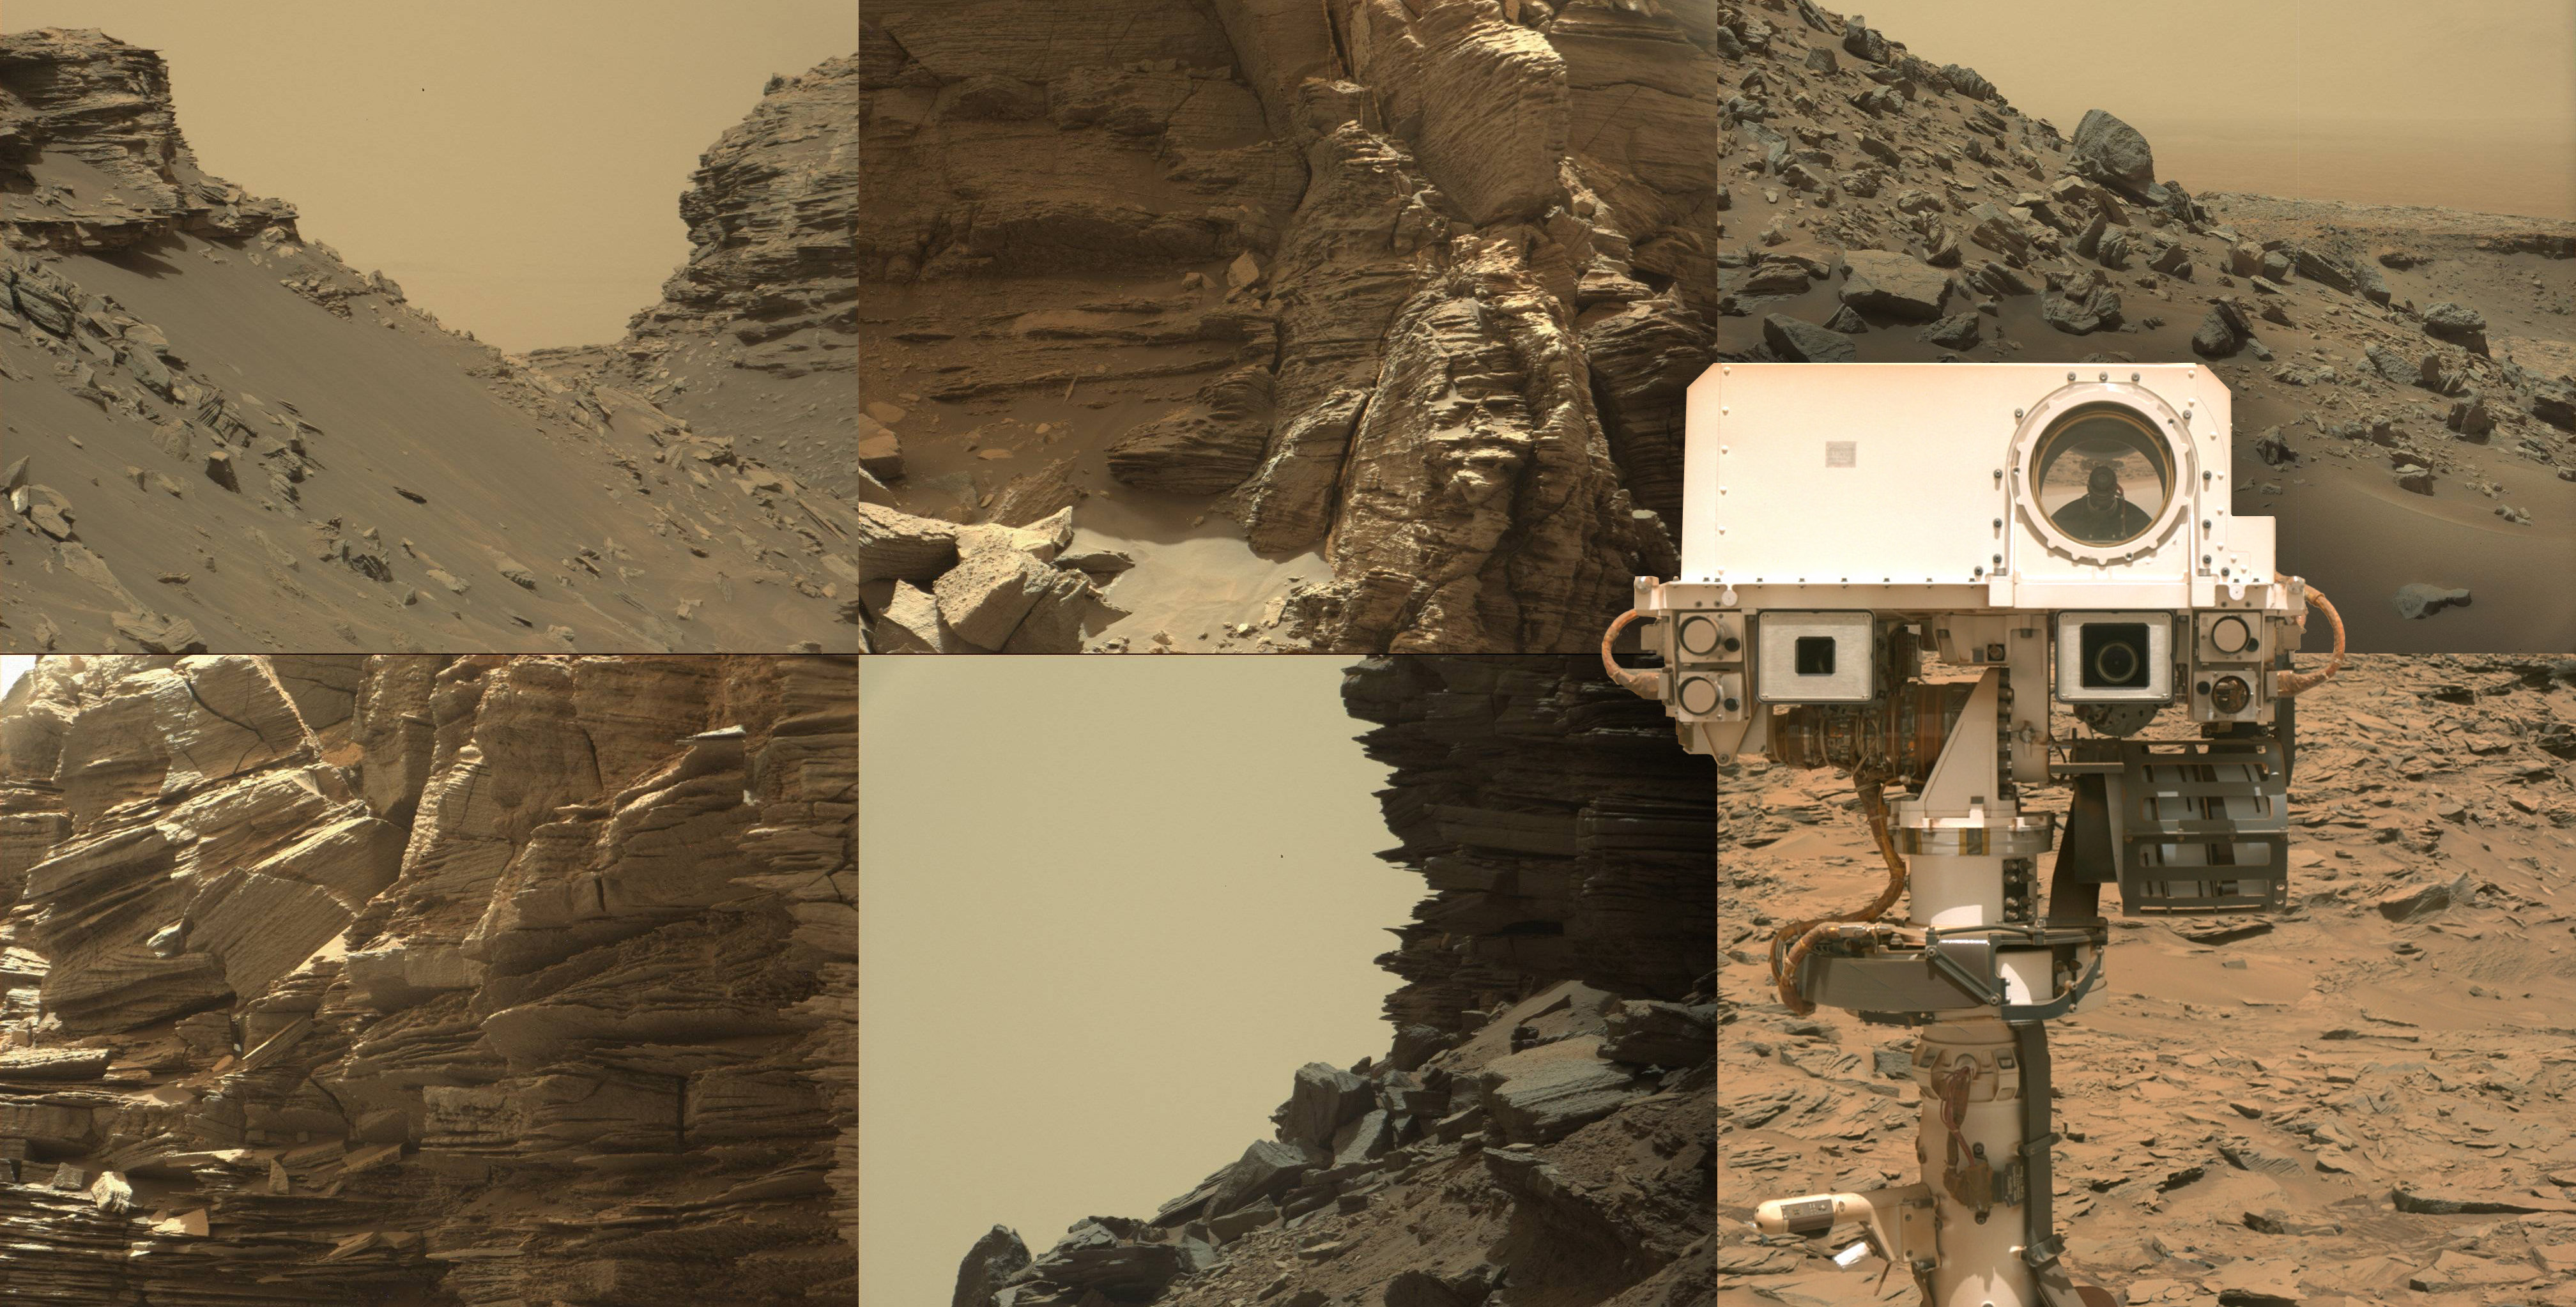 NASA Mars Rover Curiosity goes up a mountain